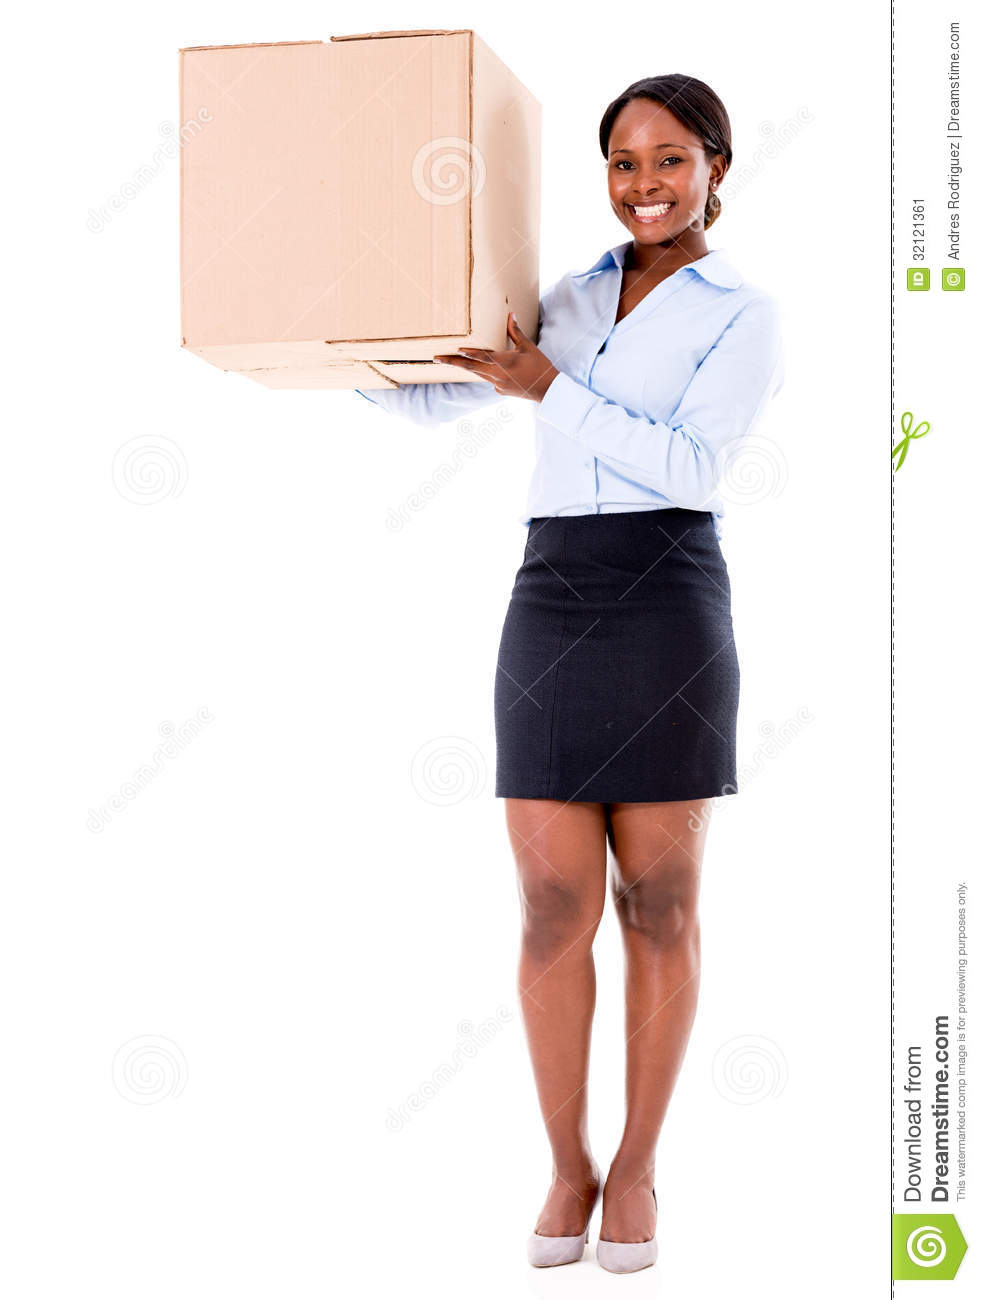 business-woman-carrying-box-moving-isola